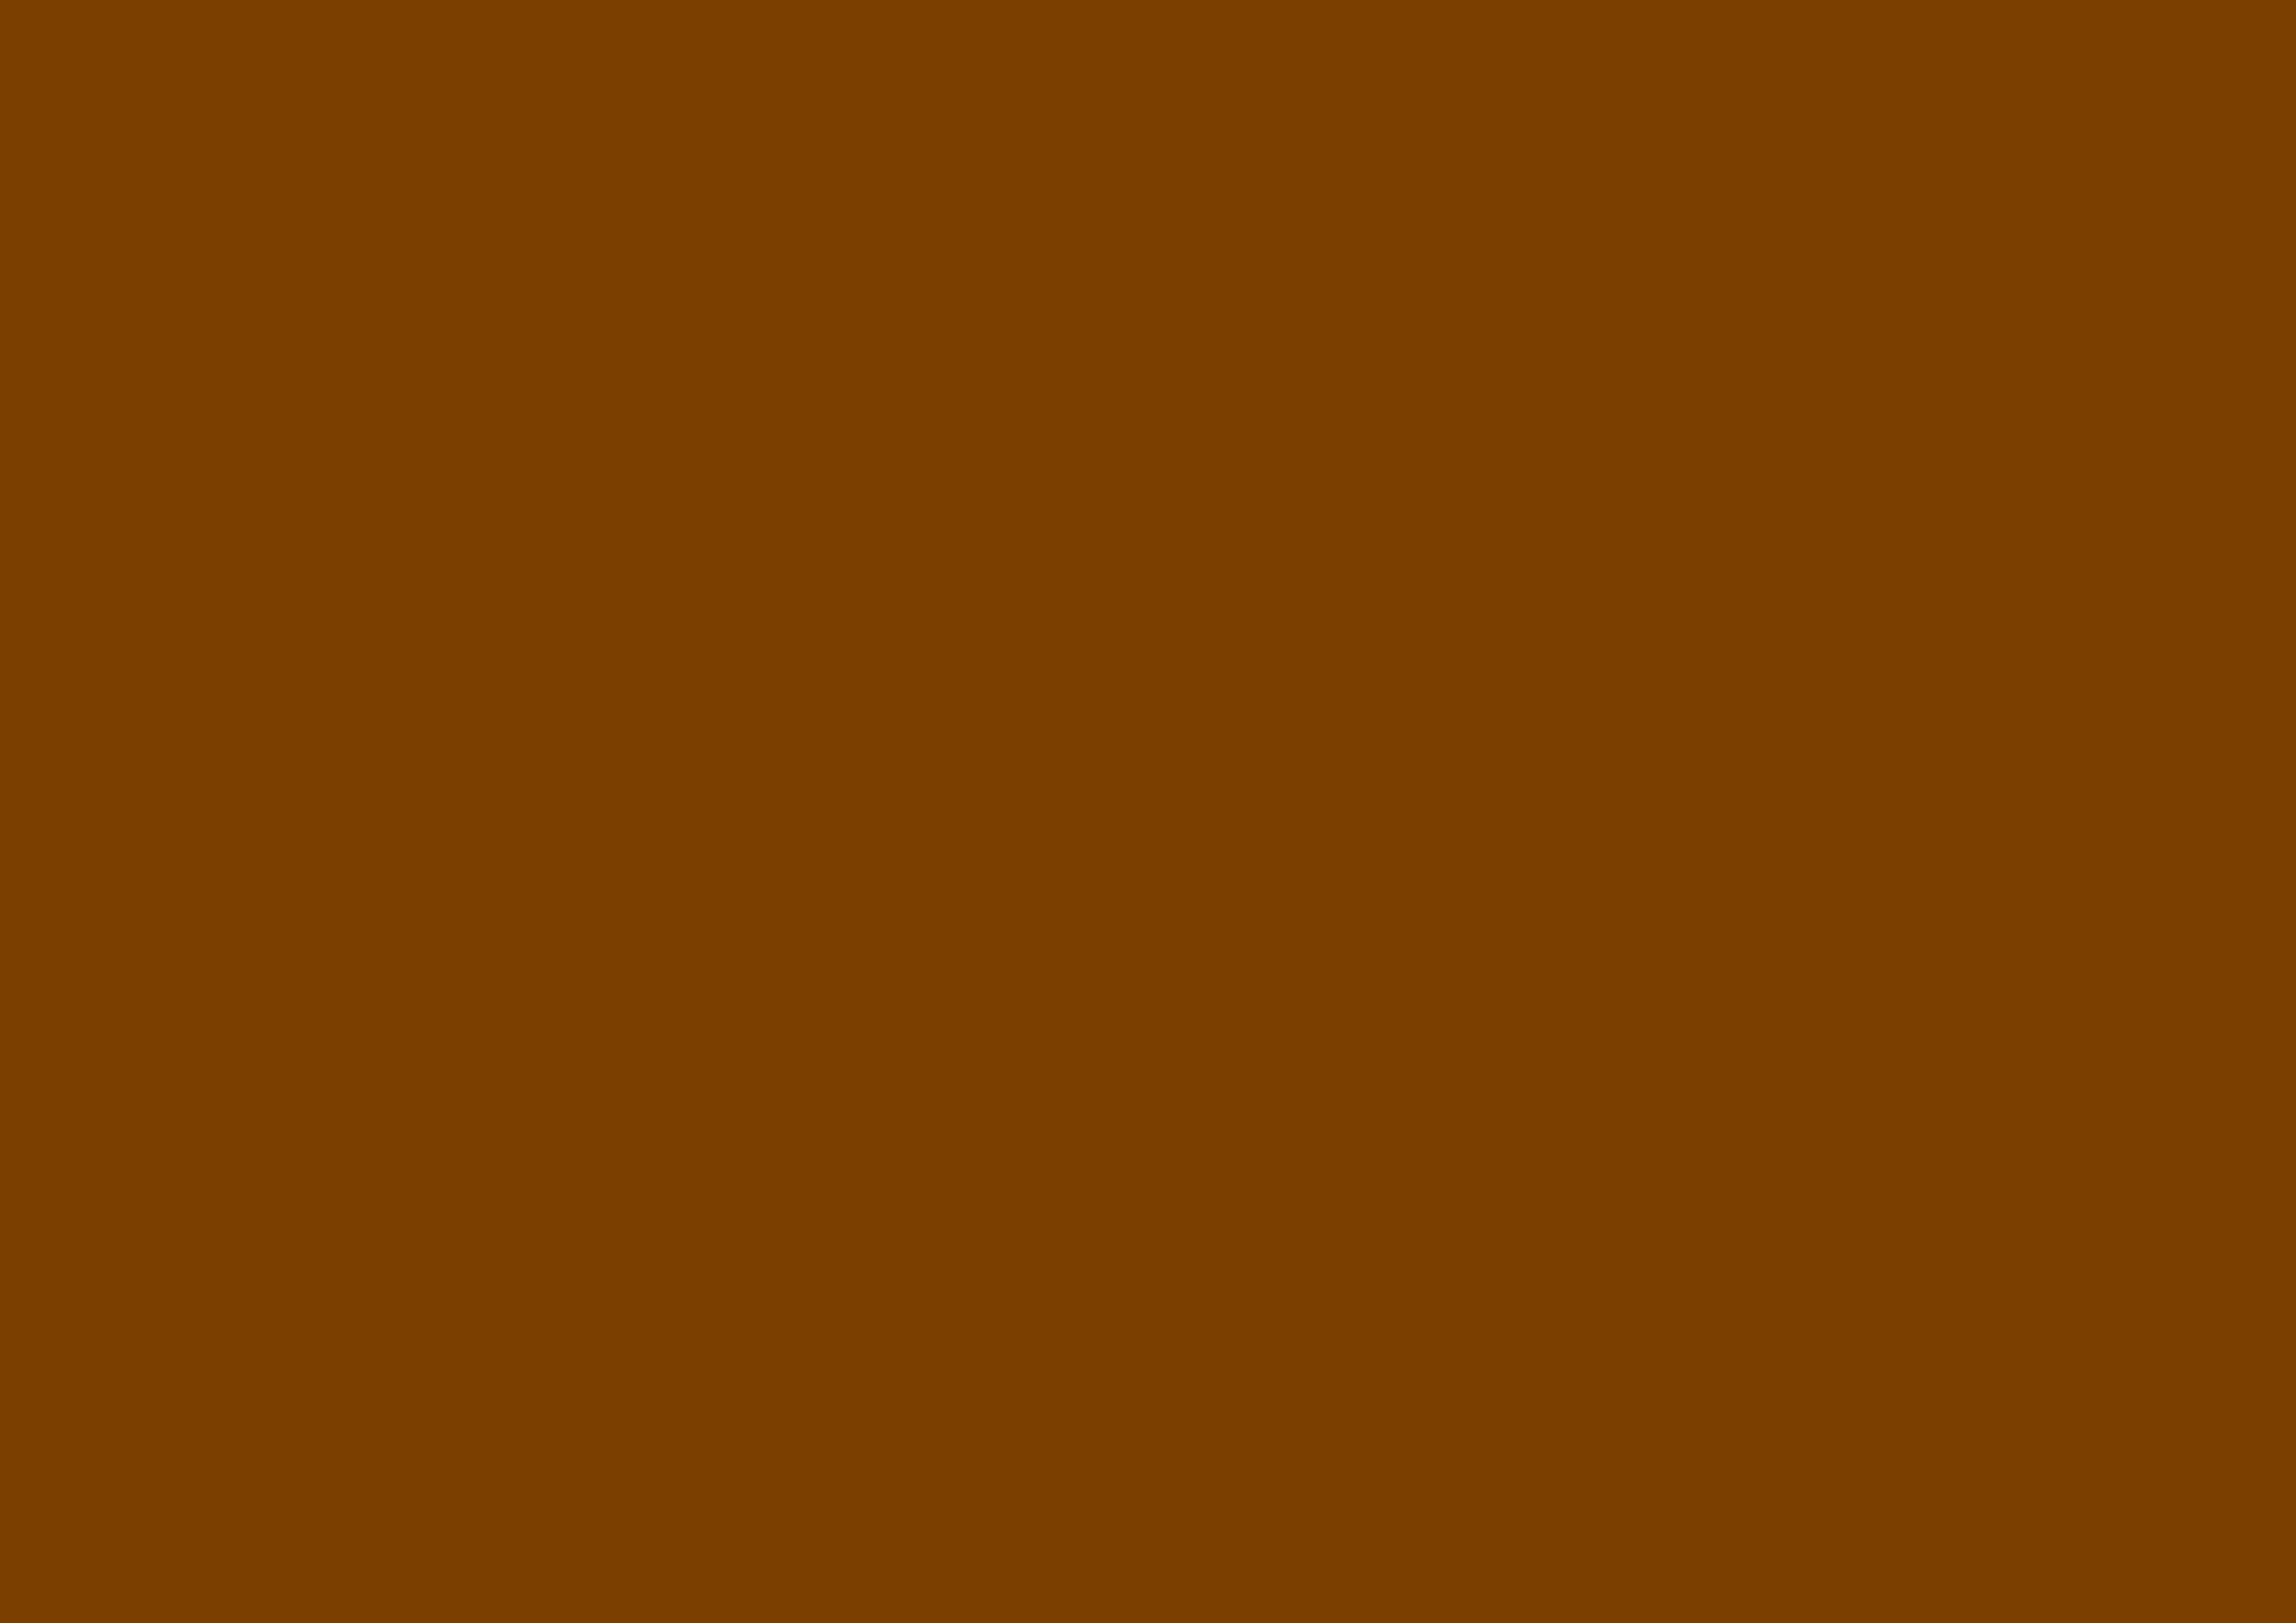 3508x2480 Chocolate Traditional Solid Color Background